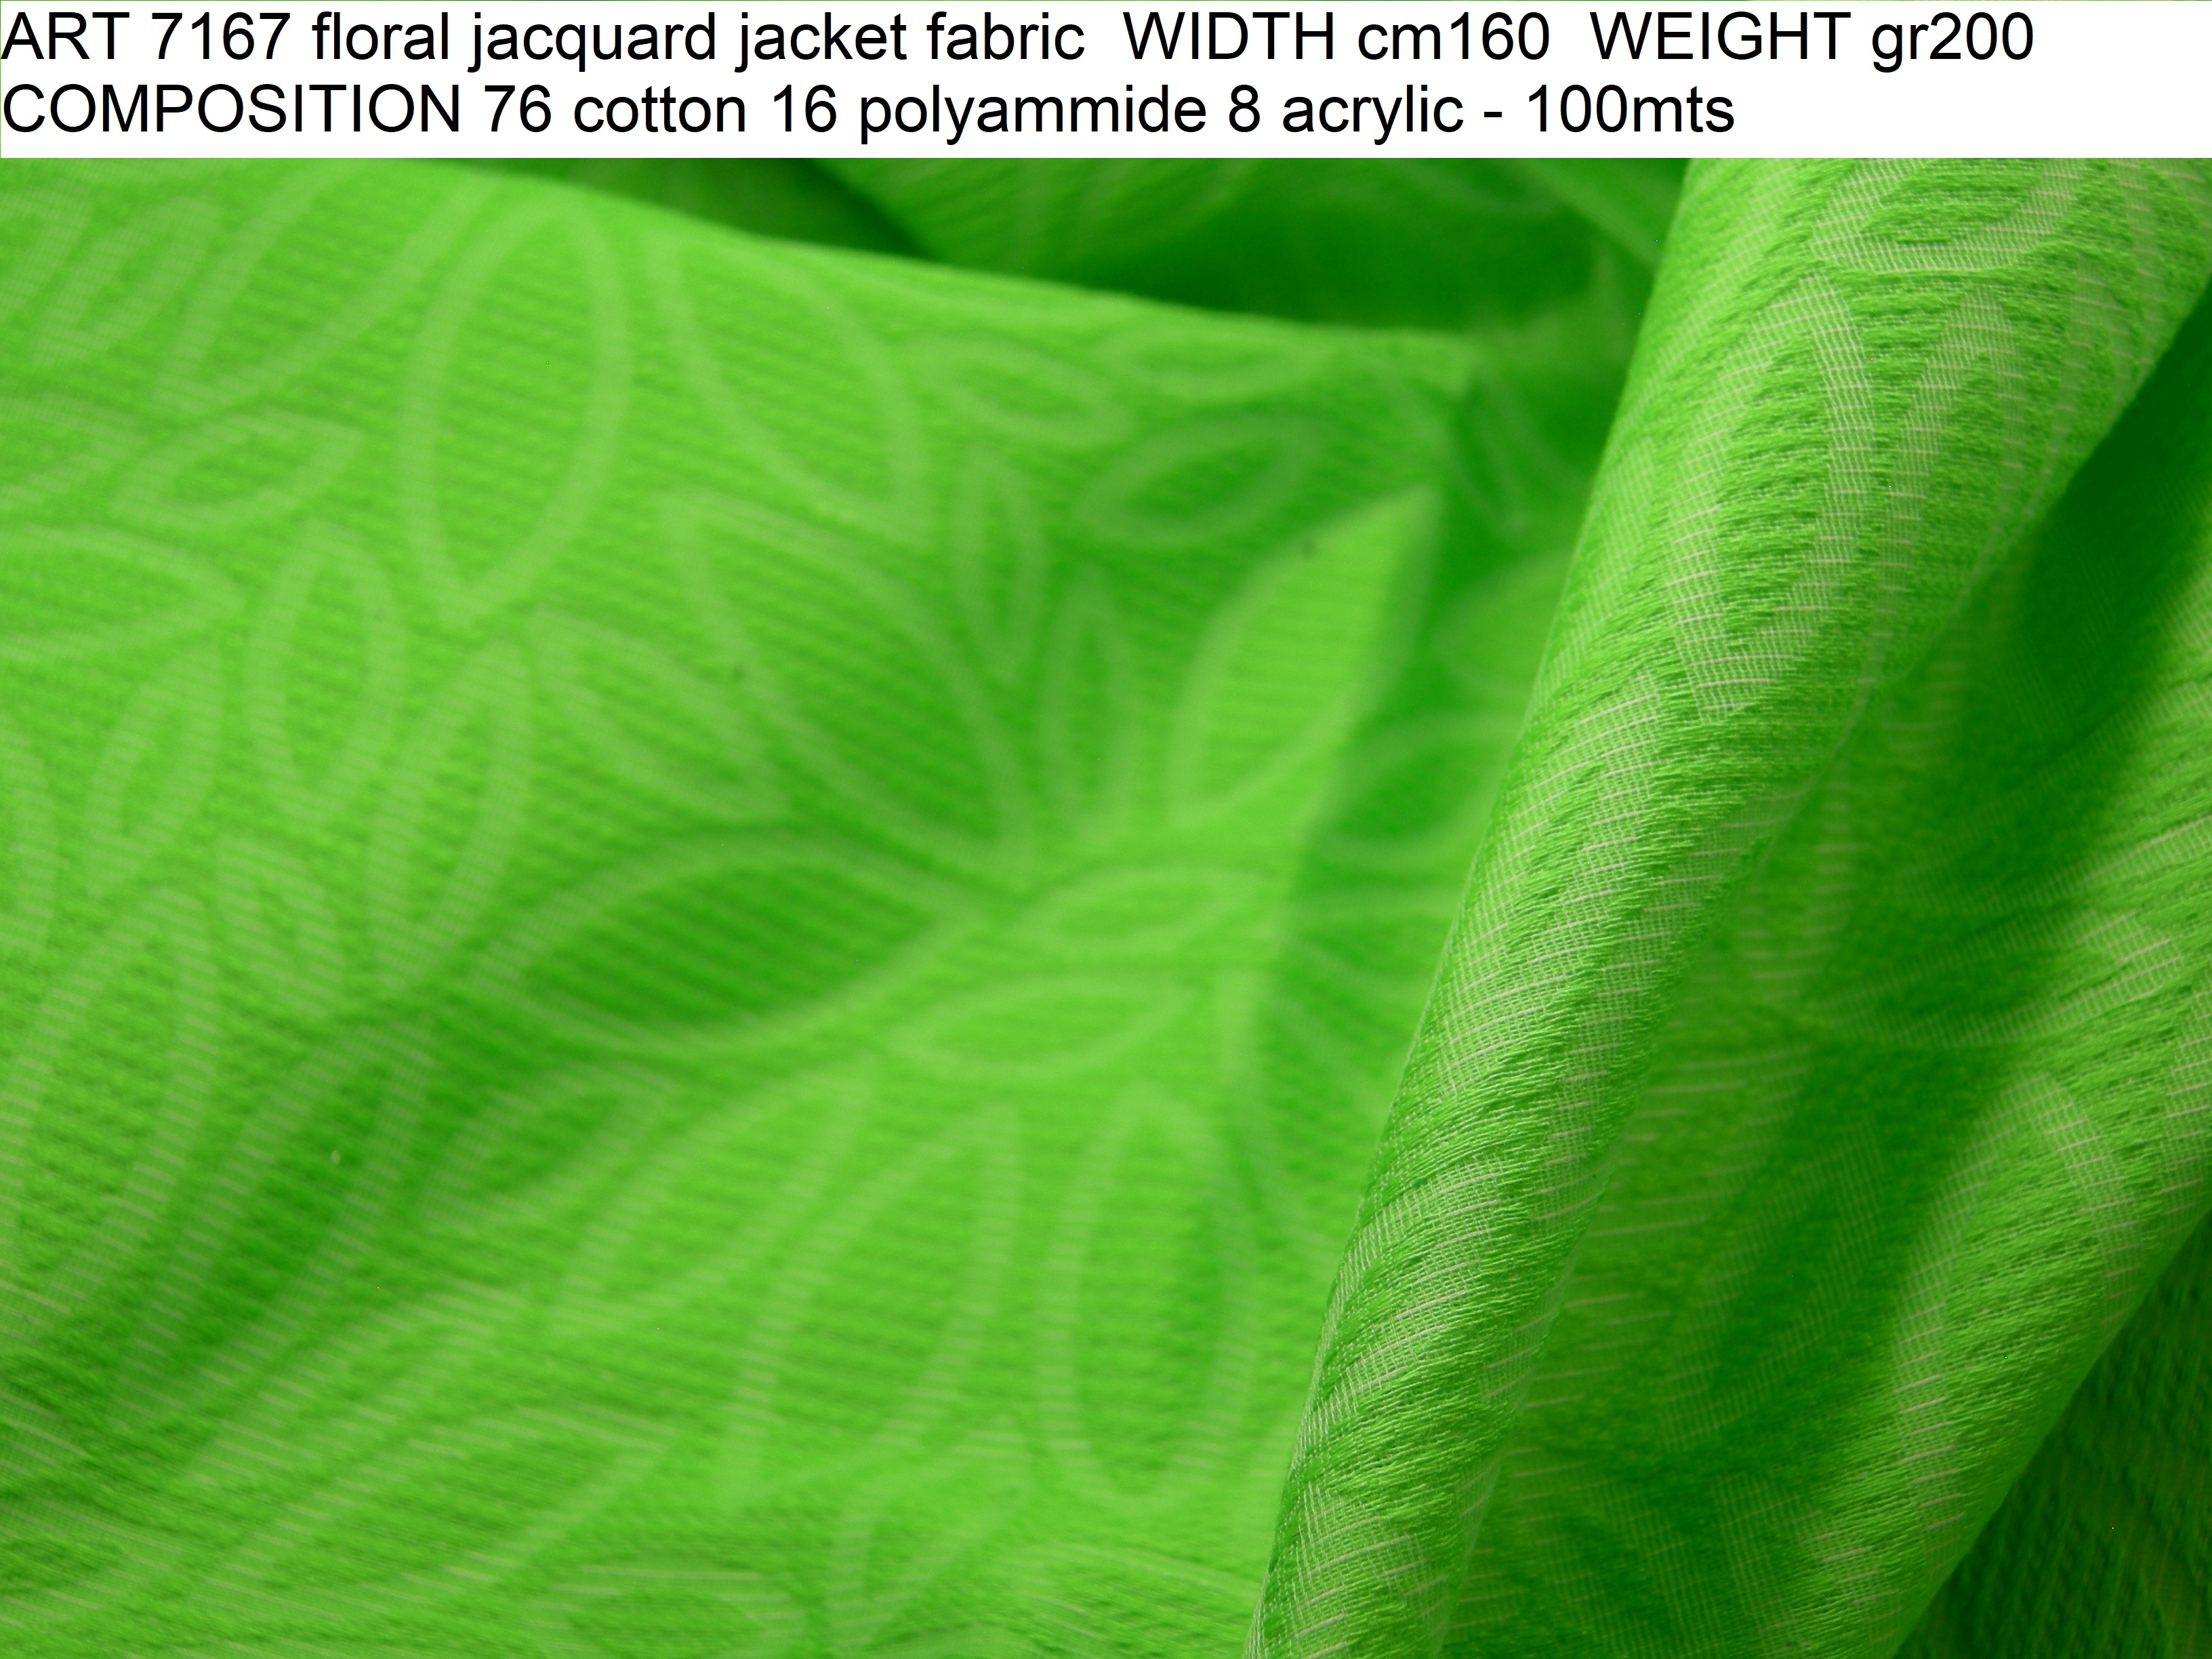 ART 7167 floral jacquard jacket fabric WIDTH cm160 WEIGHT gr200 COMPOSITION 76 cotton 16 polyammide 8 acrylic - 100mts